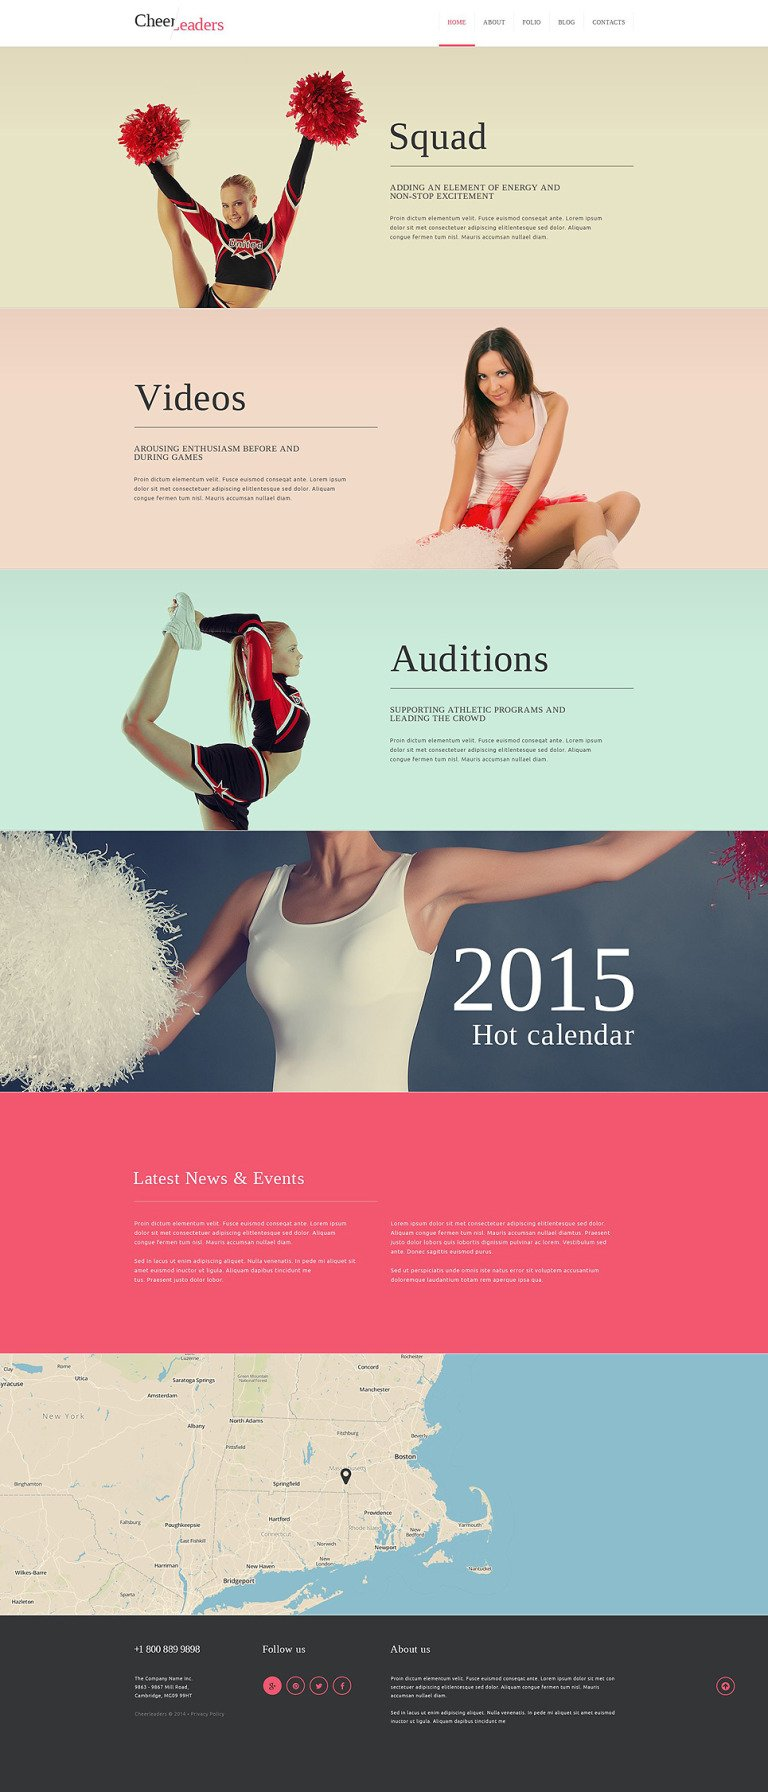 Cheerleading Squad Joomla Template New Screenshots BIG